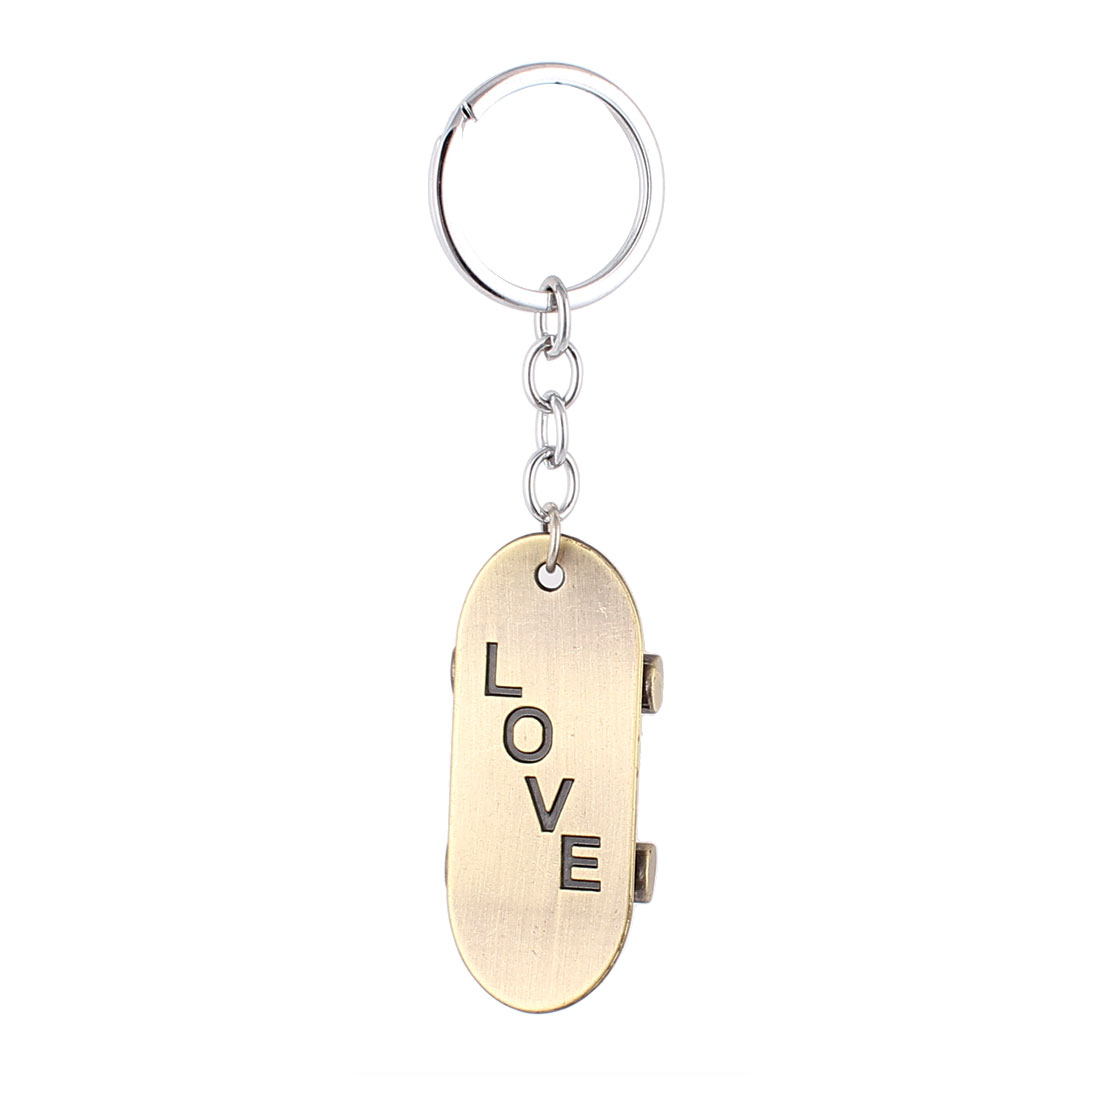 Bronze Tone Skate Shaped Pendant Keyring Keychain Key Ring Ornament 10cm